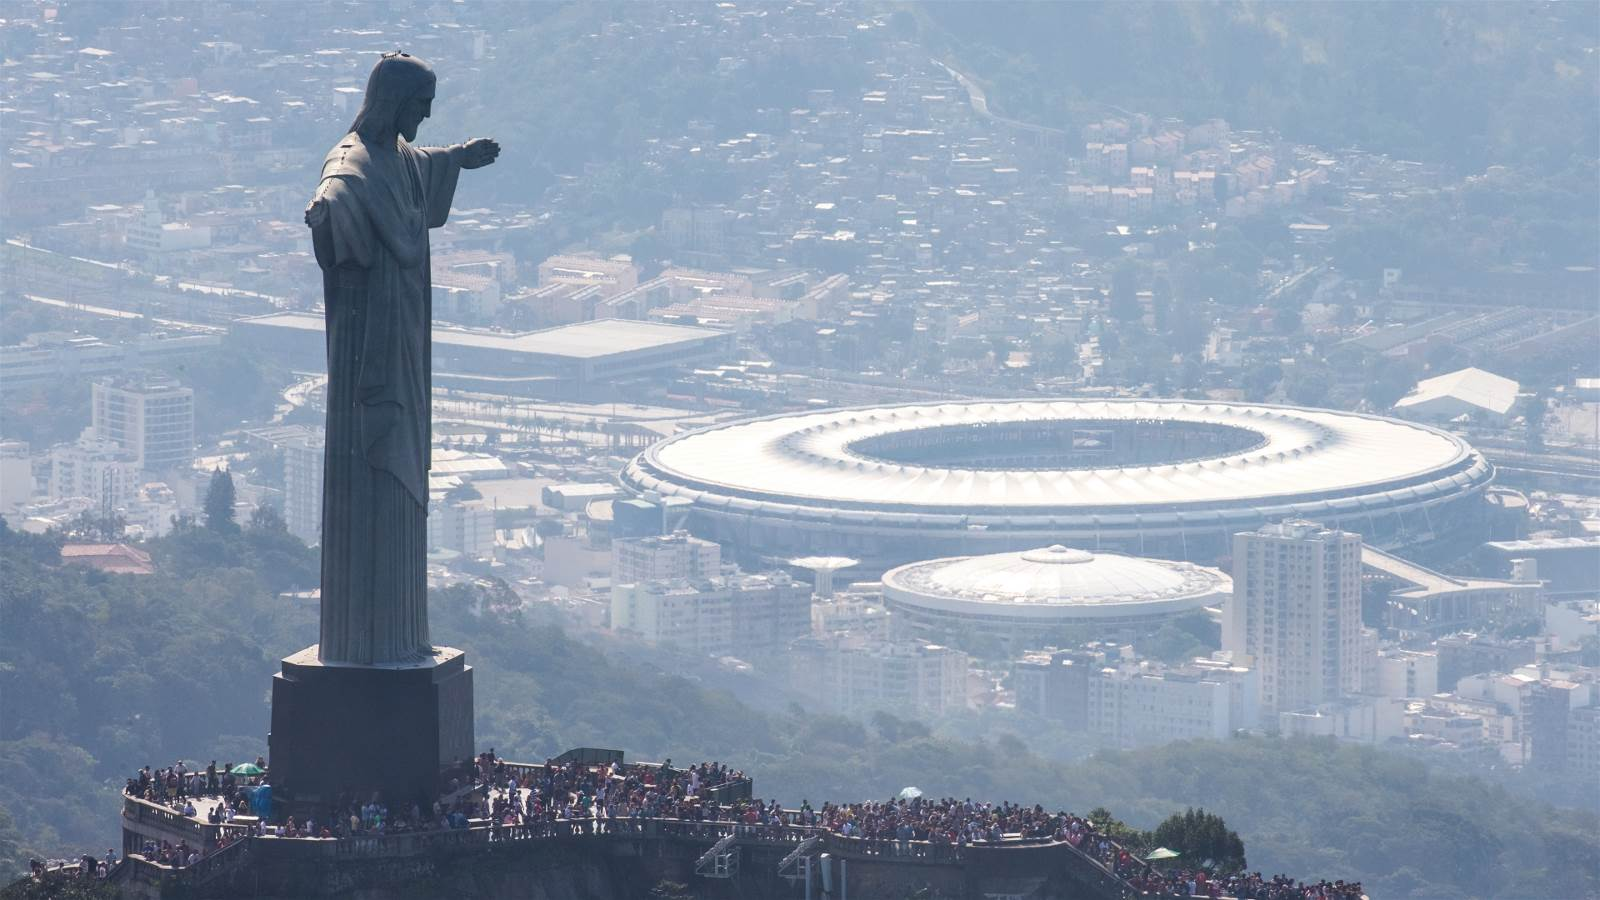 Brazil Spent Rs 1 Lakh 7 Thousand Crores on Rio Olympics